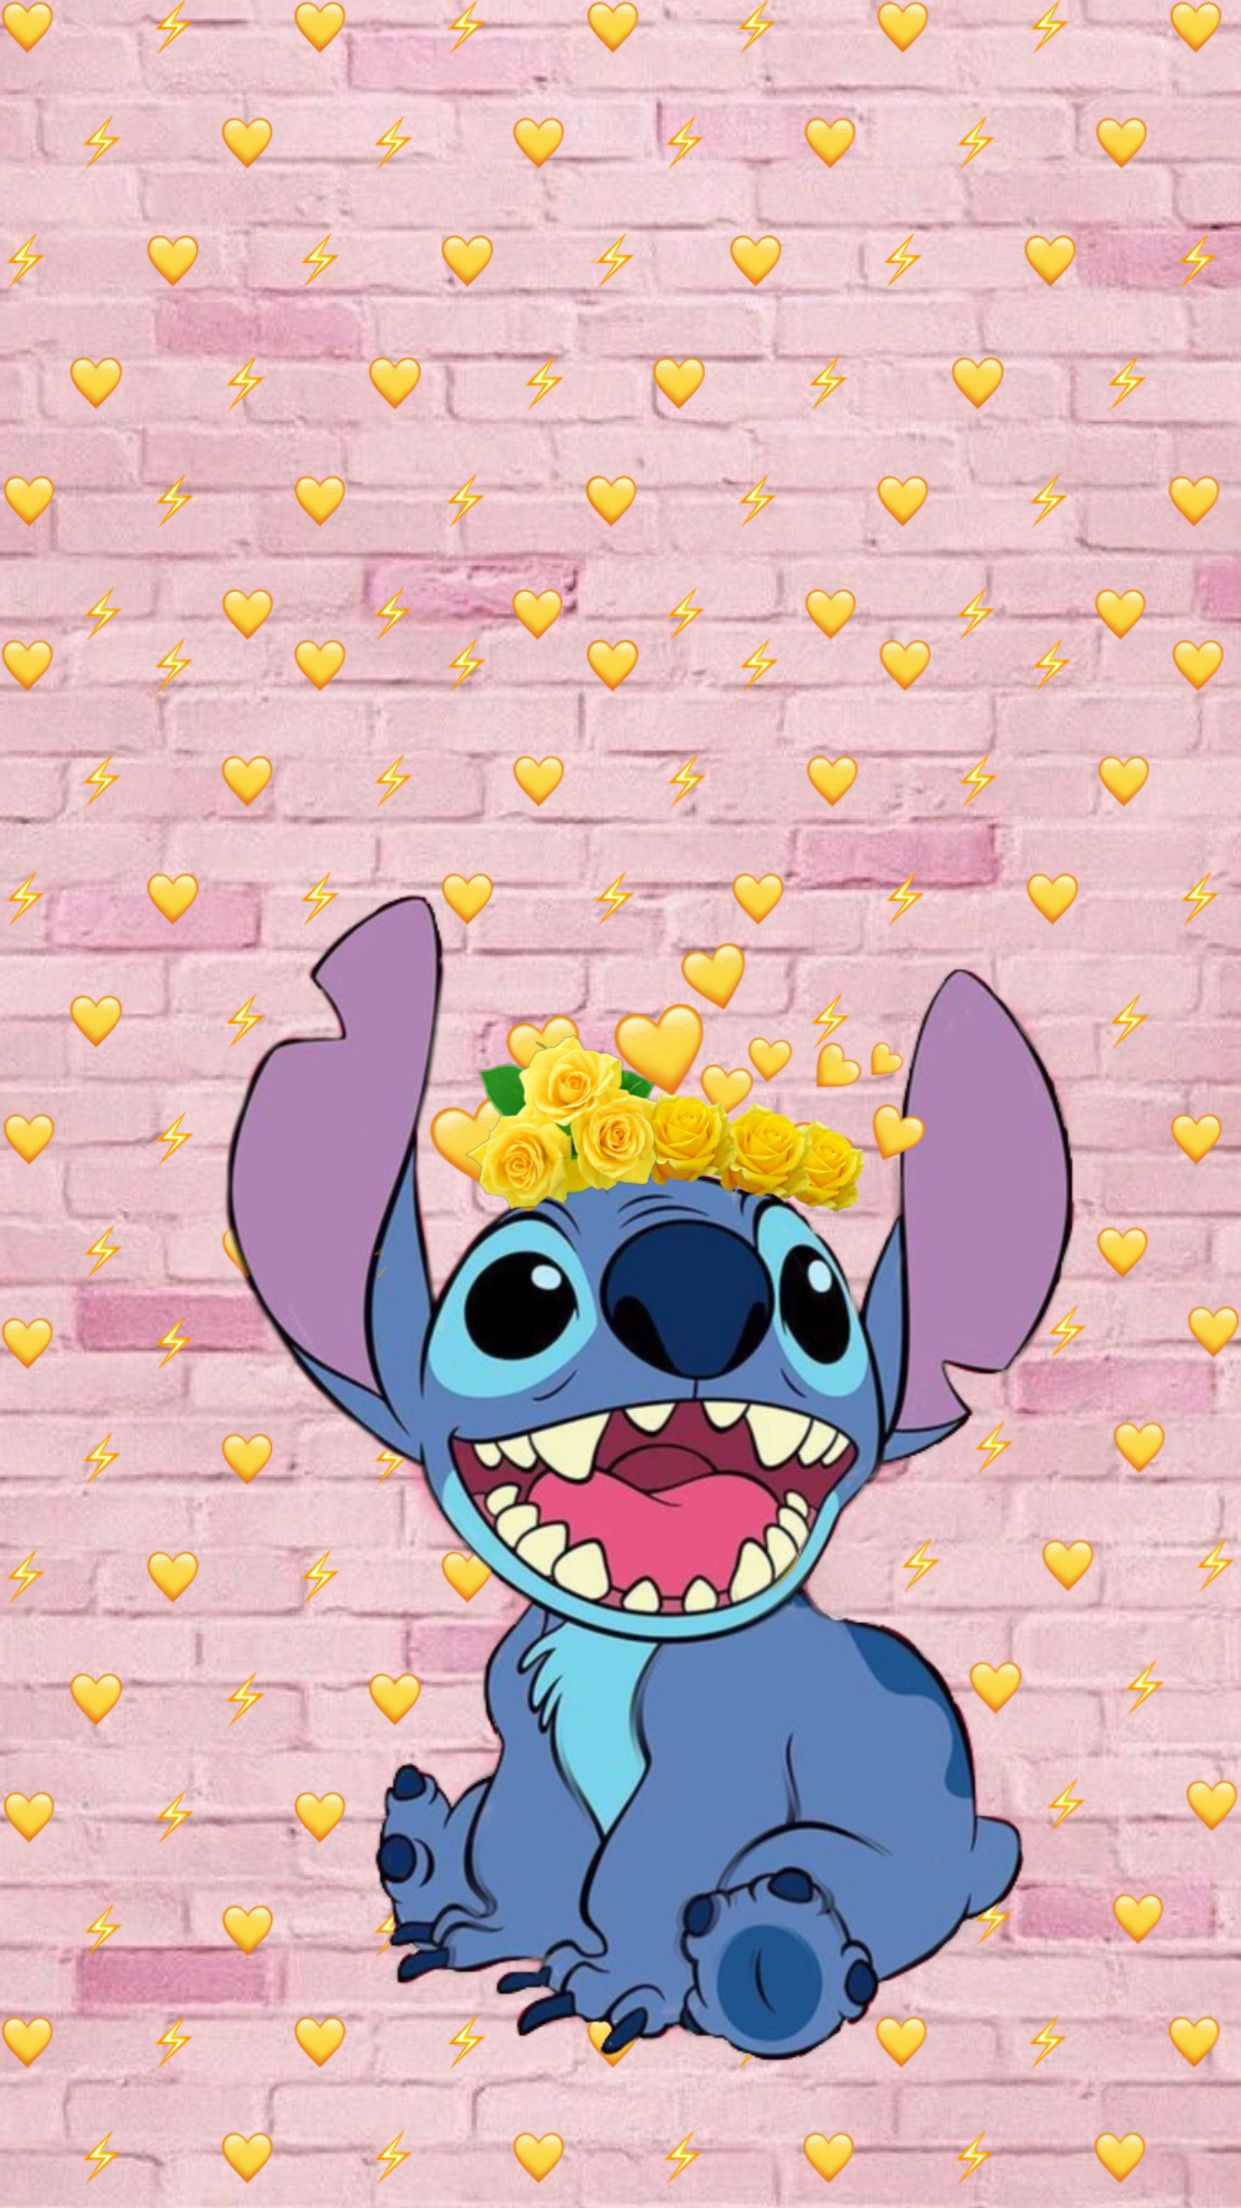 Stitch Lilo And Stitch Drawings Iphone Wallpaper Girly Cartoon Wallpaper Iphone